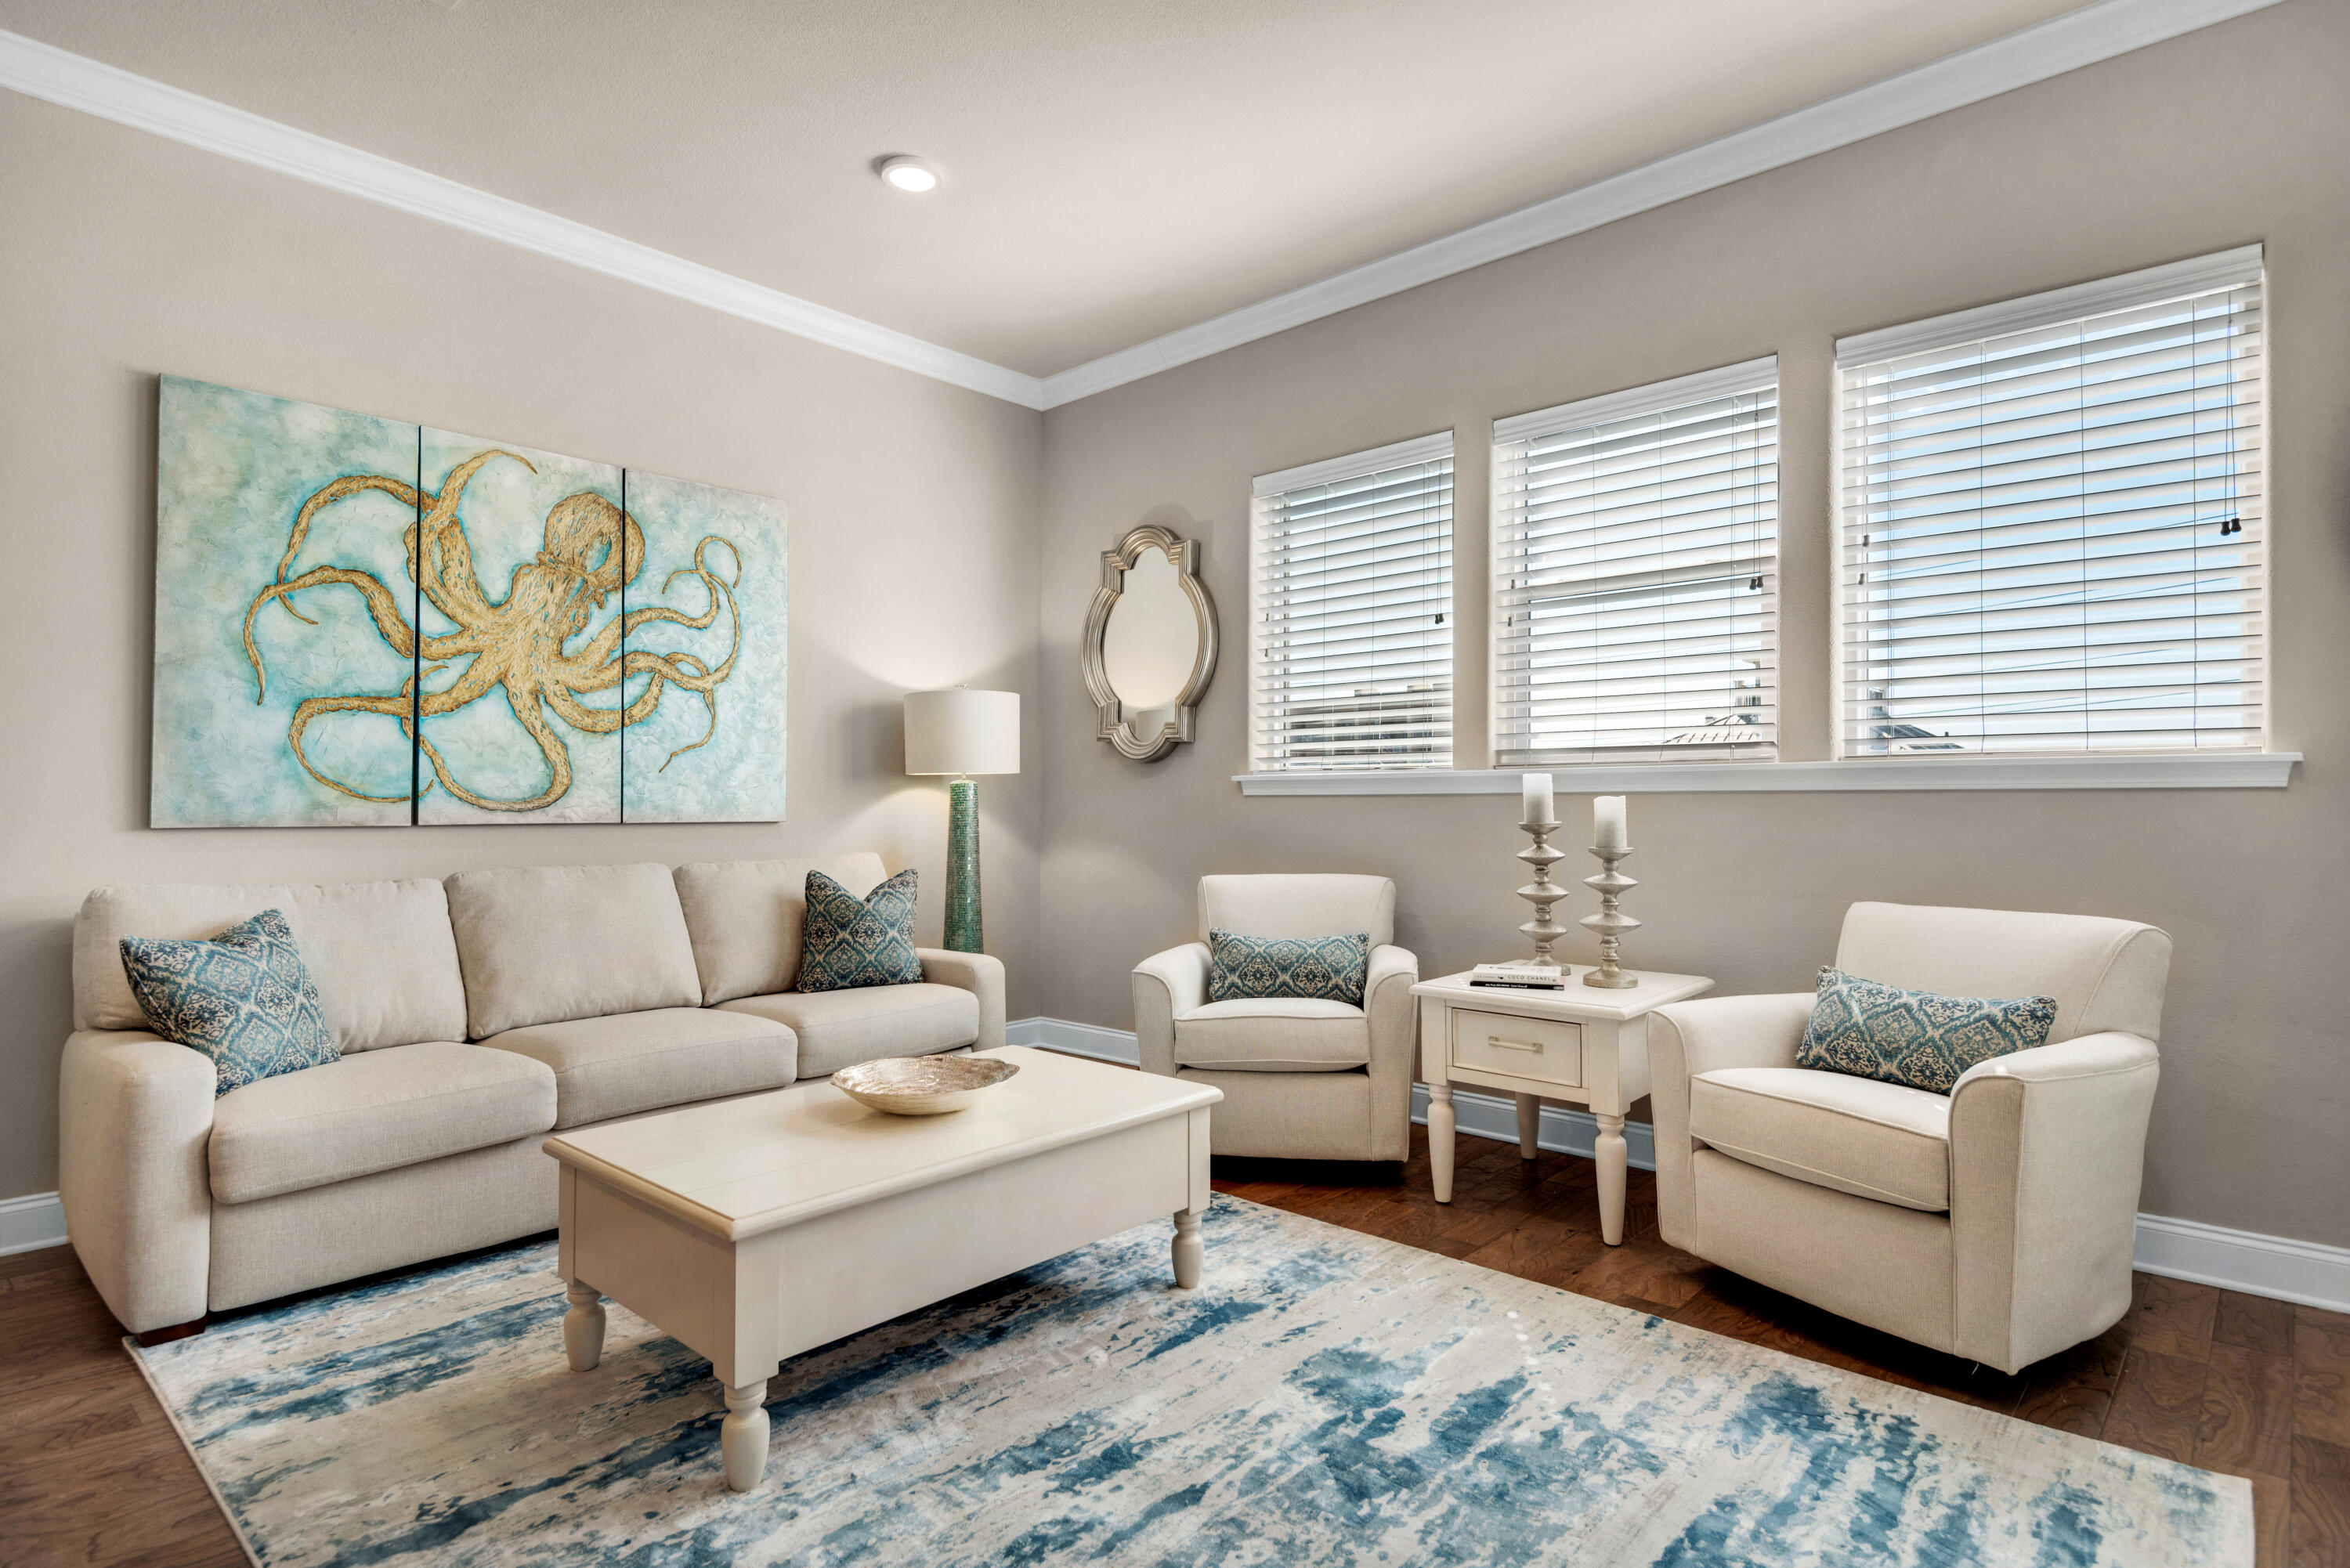 Prominently positioned directly across the street from the Gulf of Mexico, this fully furnished turnkey condominium is located FRONT ROW in the most desirable building C. Alerio C304 offers three spacious bedrooms, two bathrooms and can comfortably accommodate up to nine guests. Notable features include 10 ft ceilings, granite countertops, wood floors throughout, stainless steel appliances, private balcony with stunning gulf views, and less than a two-minute walk to the beach. Located in the heart of Miramar Beach, Alerio features a fabulous heated pool, hot tub, splash pad for kids, outdoor grilling area, and two private deeded beach accesses. Hop in your golf cart for a short ride to shopping, dining and entertainment along Scenic 98.  Copy & paste the link for more info:  https://www.destin-palms.com/booking/alerio-c304/1769-144941.